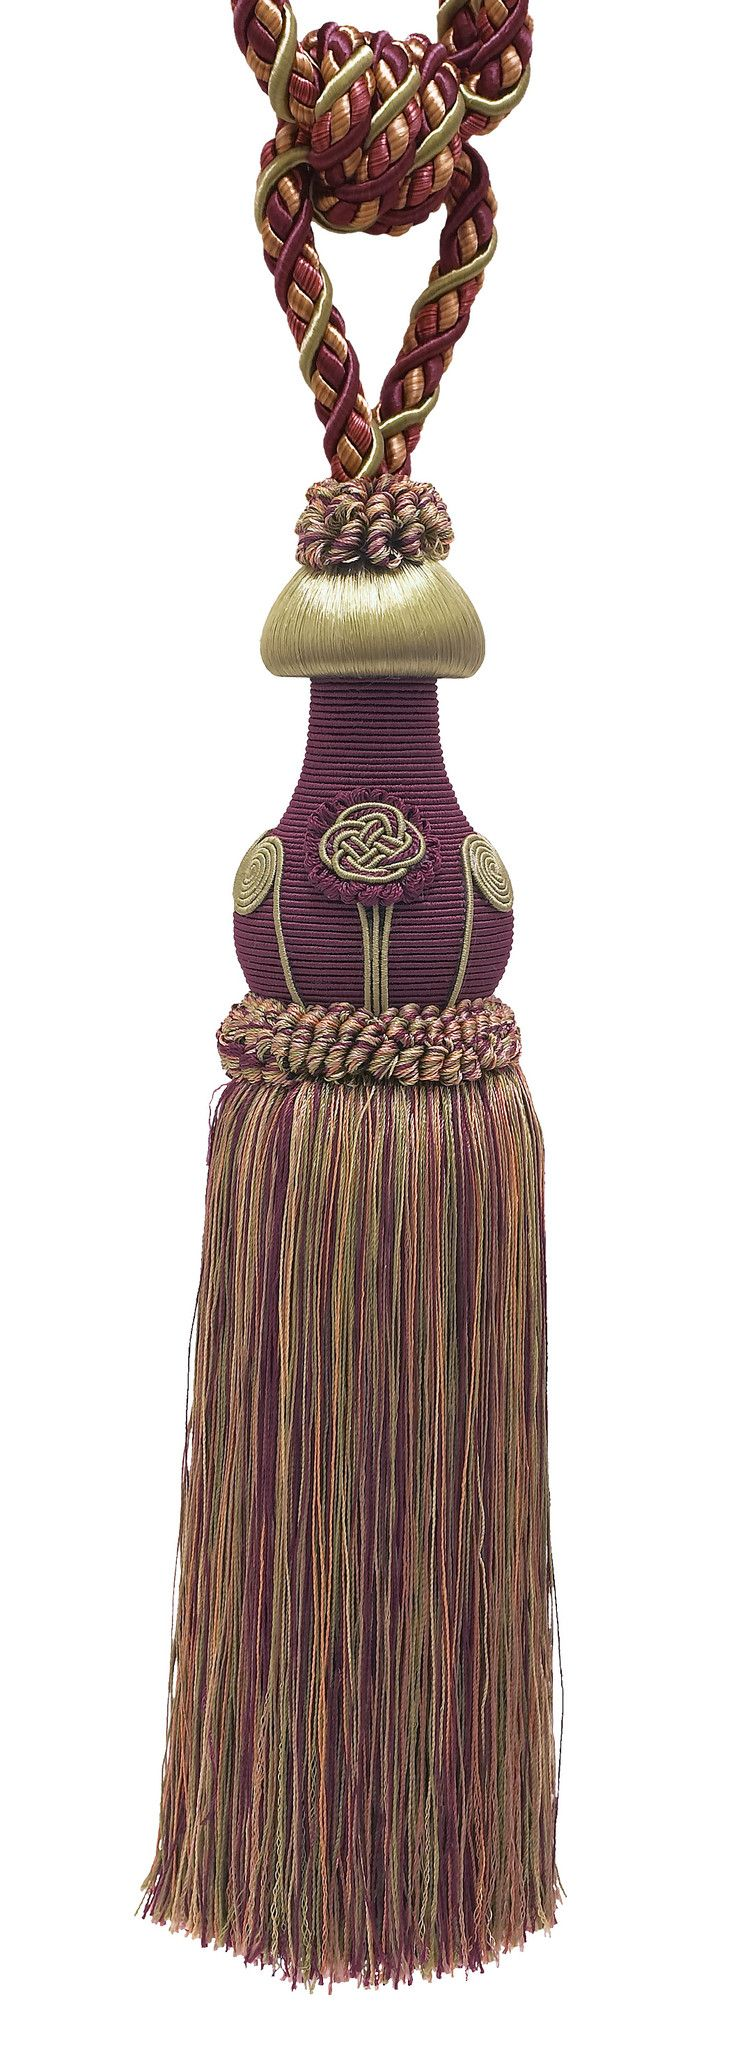 "Decorative PLUM OLIVE GREEN Curtain & Drapery Tassel Tieback /12"" tassel, 32"" Spread (embrace), 7/16"" Cord, Baroque Collection Style# TBBL-1 Color: PLUM OLIVE 7346"